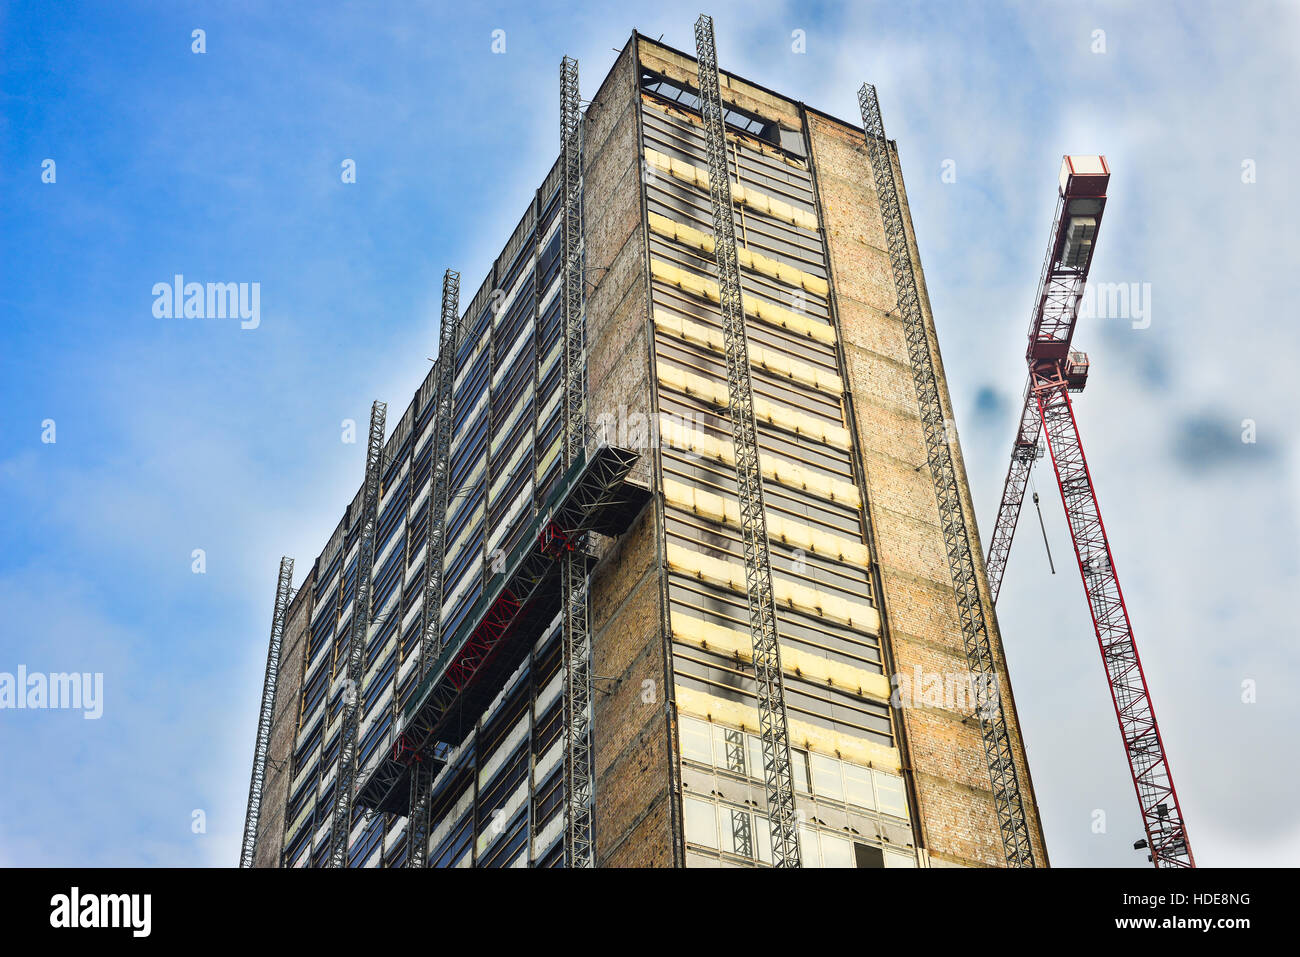 Building Under Reconstruction - Stock Image